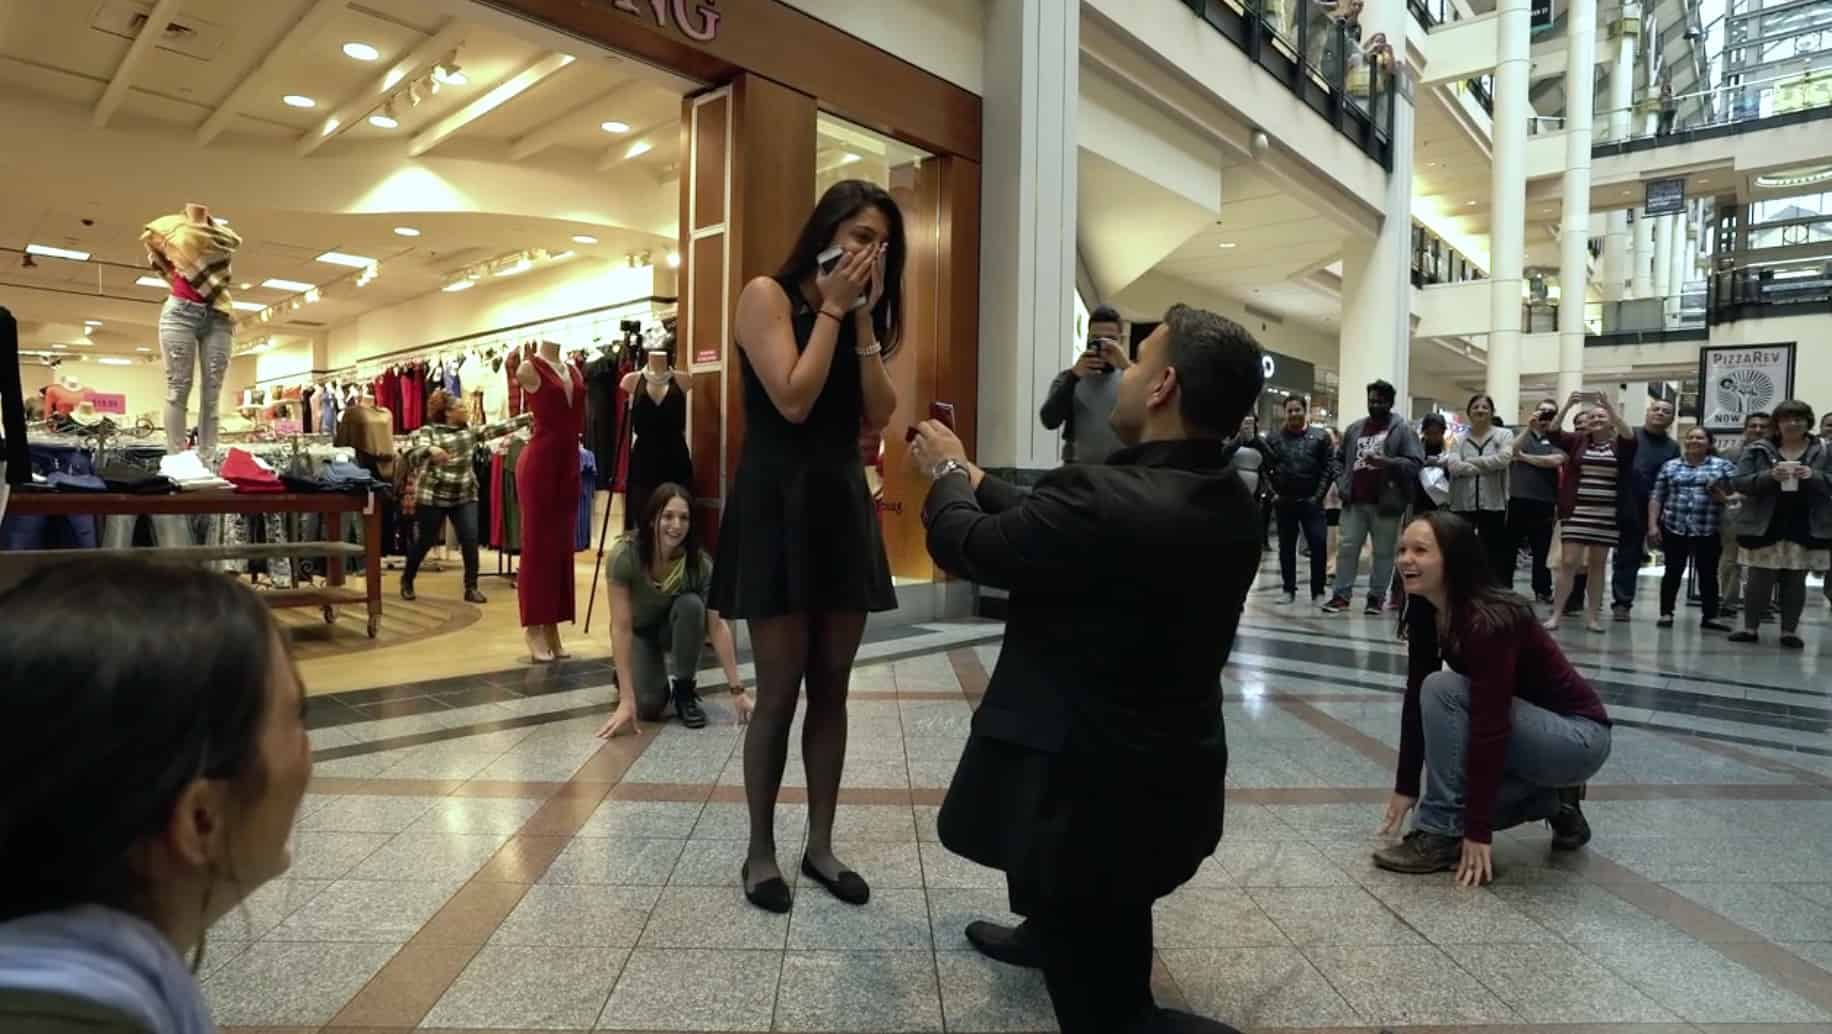 boston-flash-mob-proposal-4.jpg